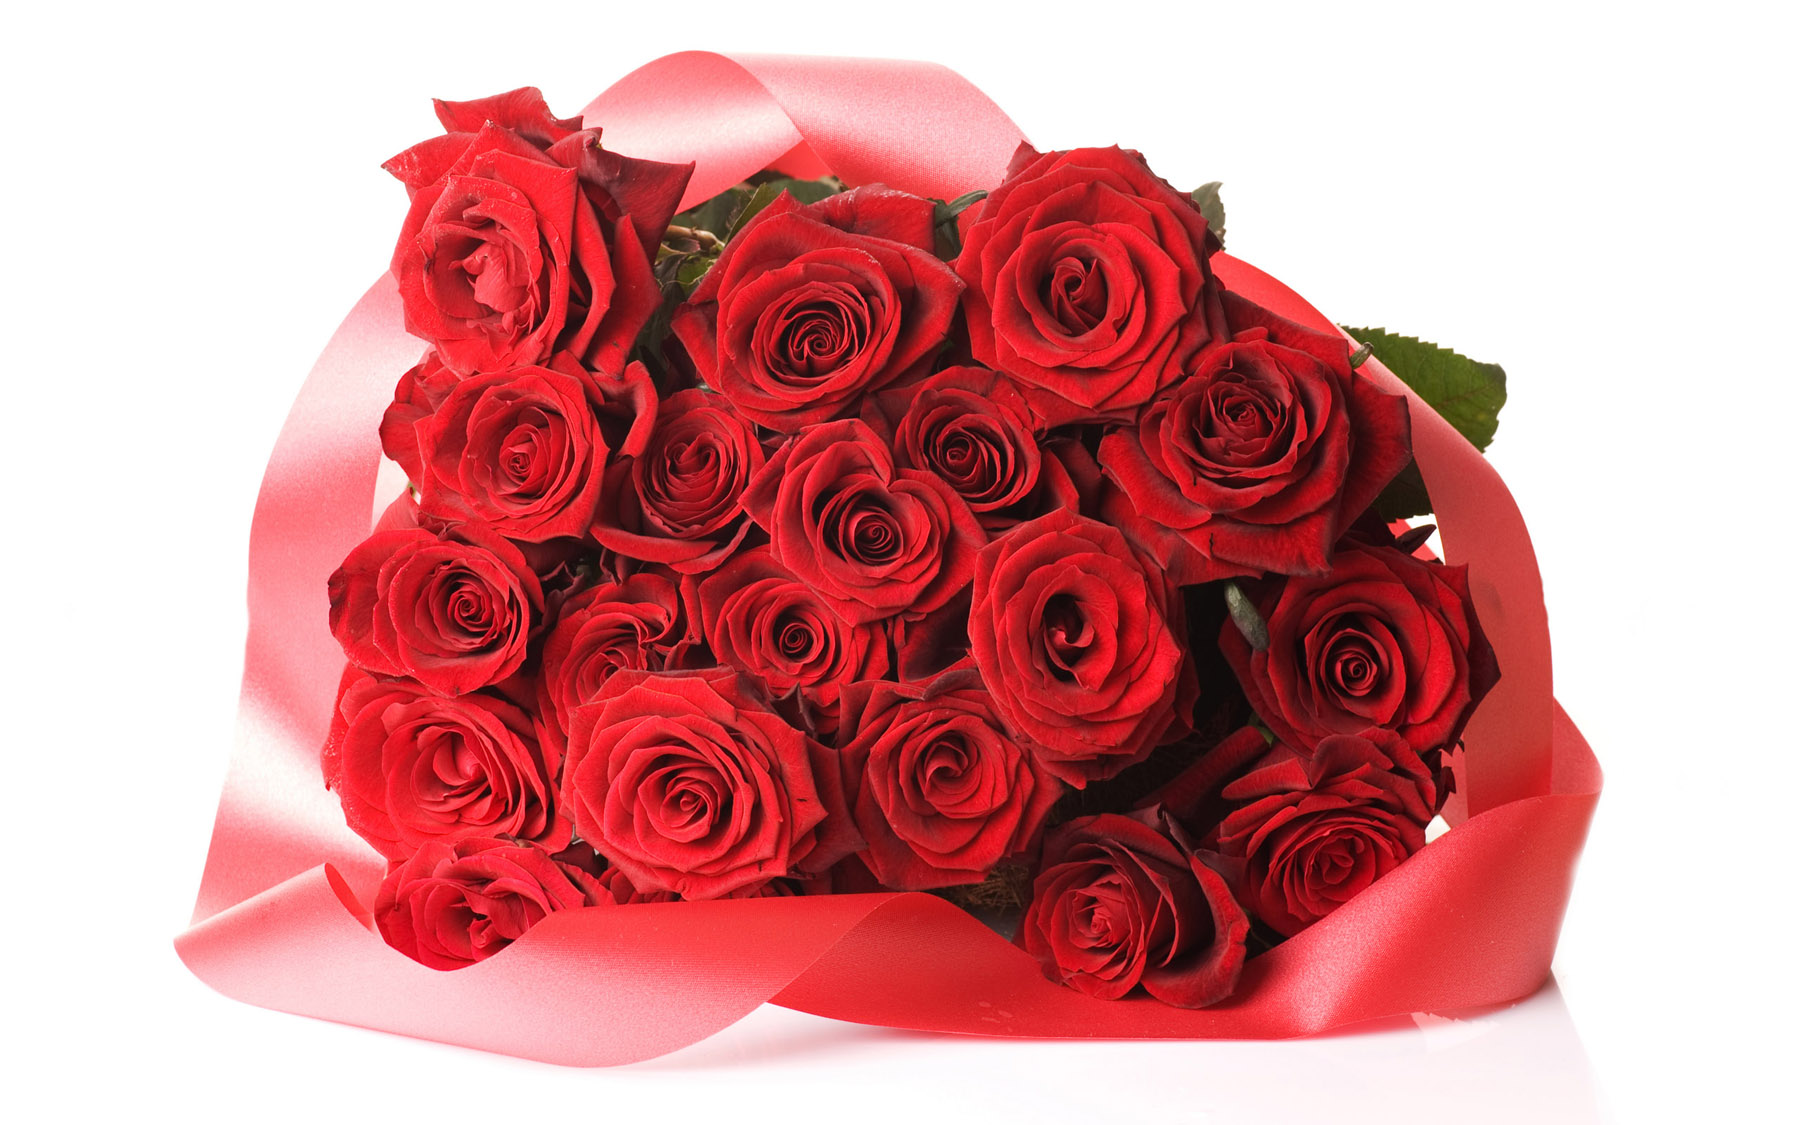 High-resolution photo roses 25410